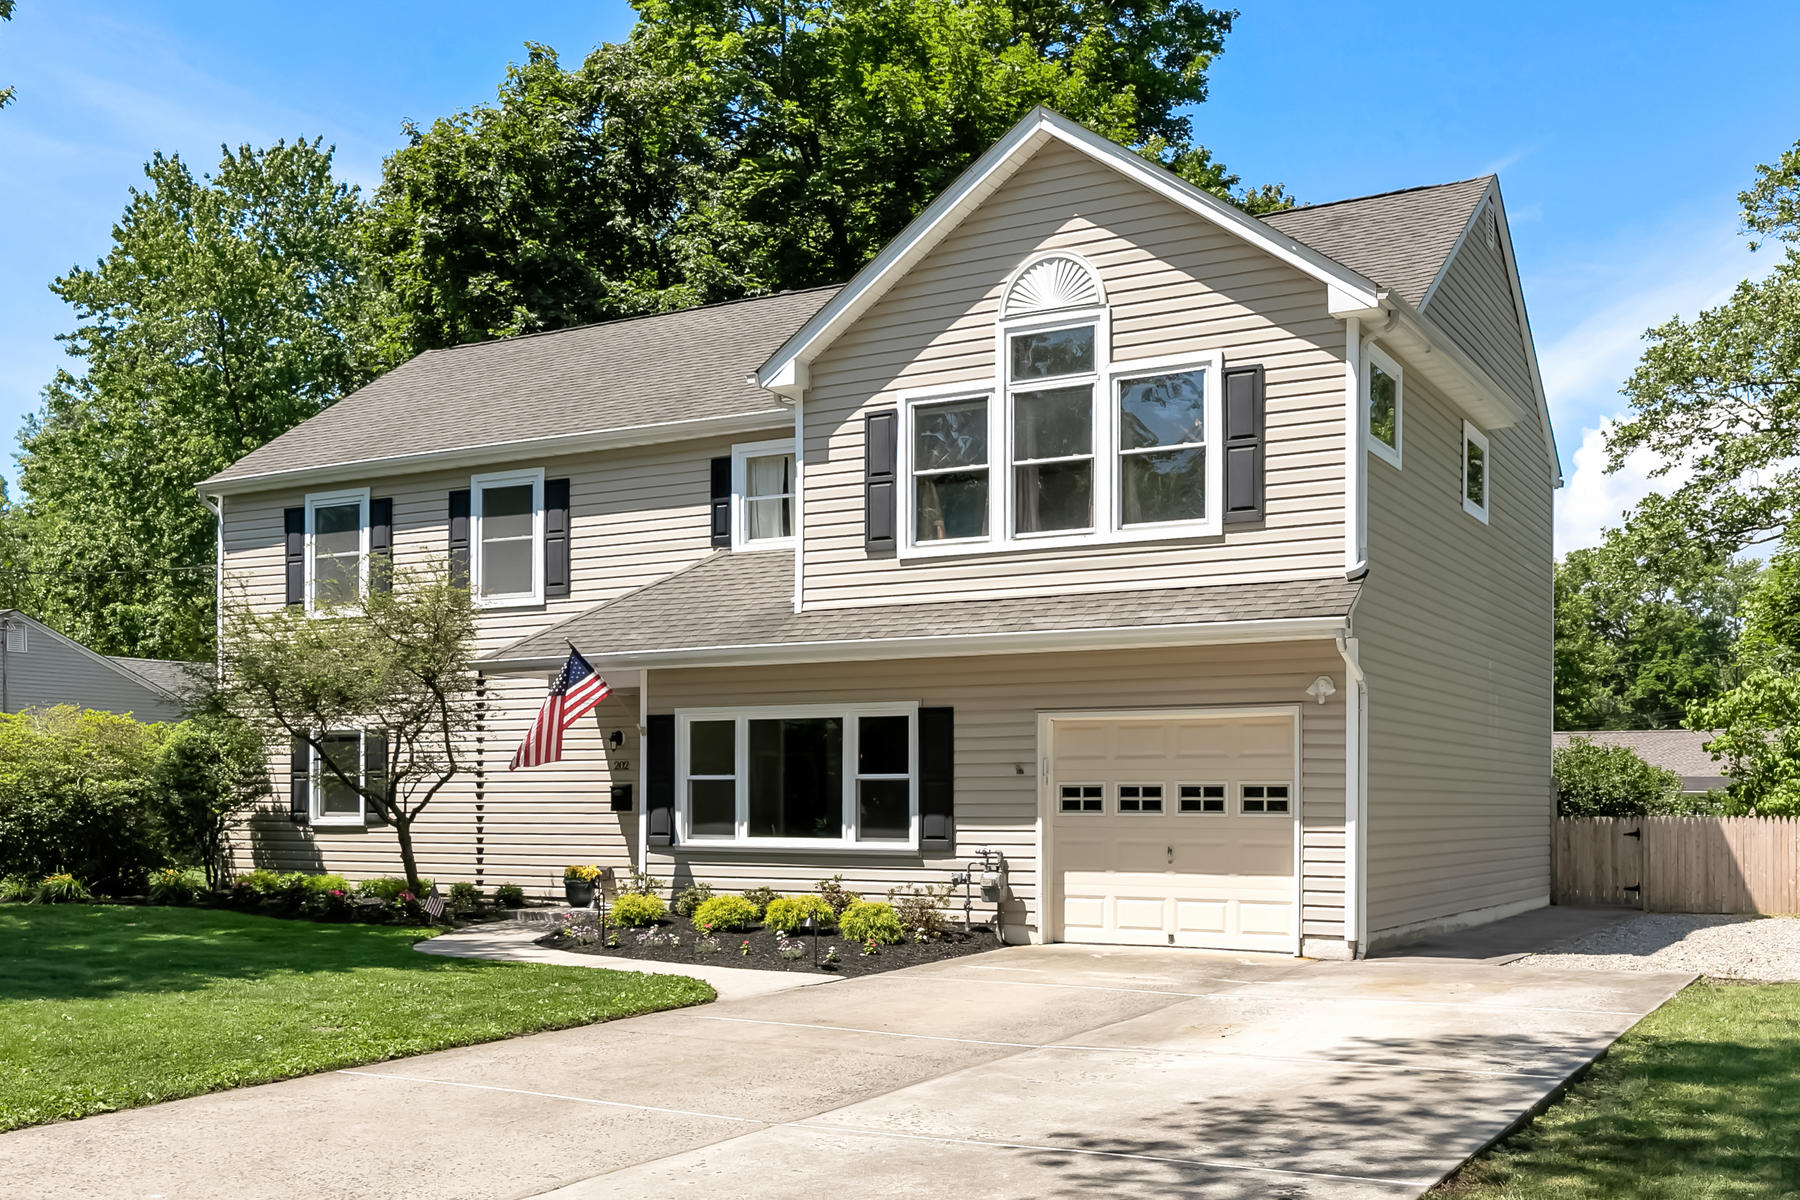 Single Family Homes for Active at 202 Beechwood Drive Shrewsbury, New Jersey 07702 United States